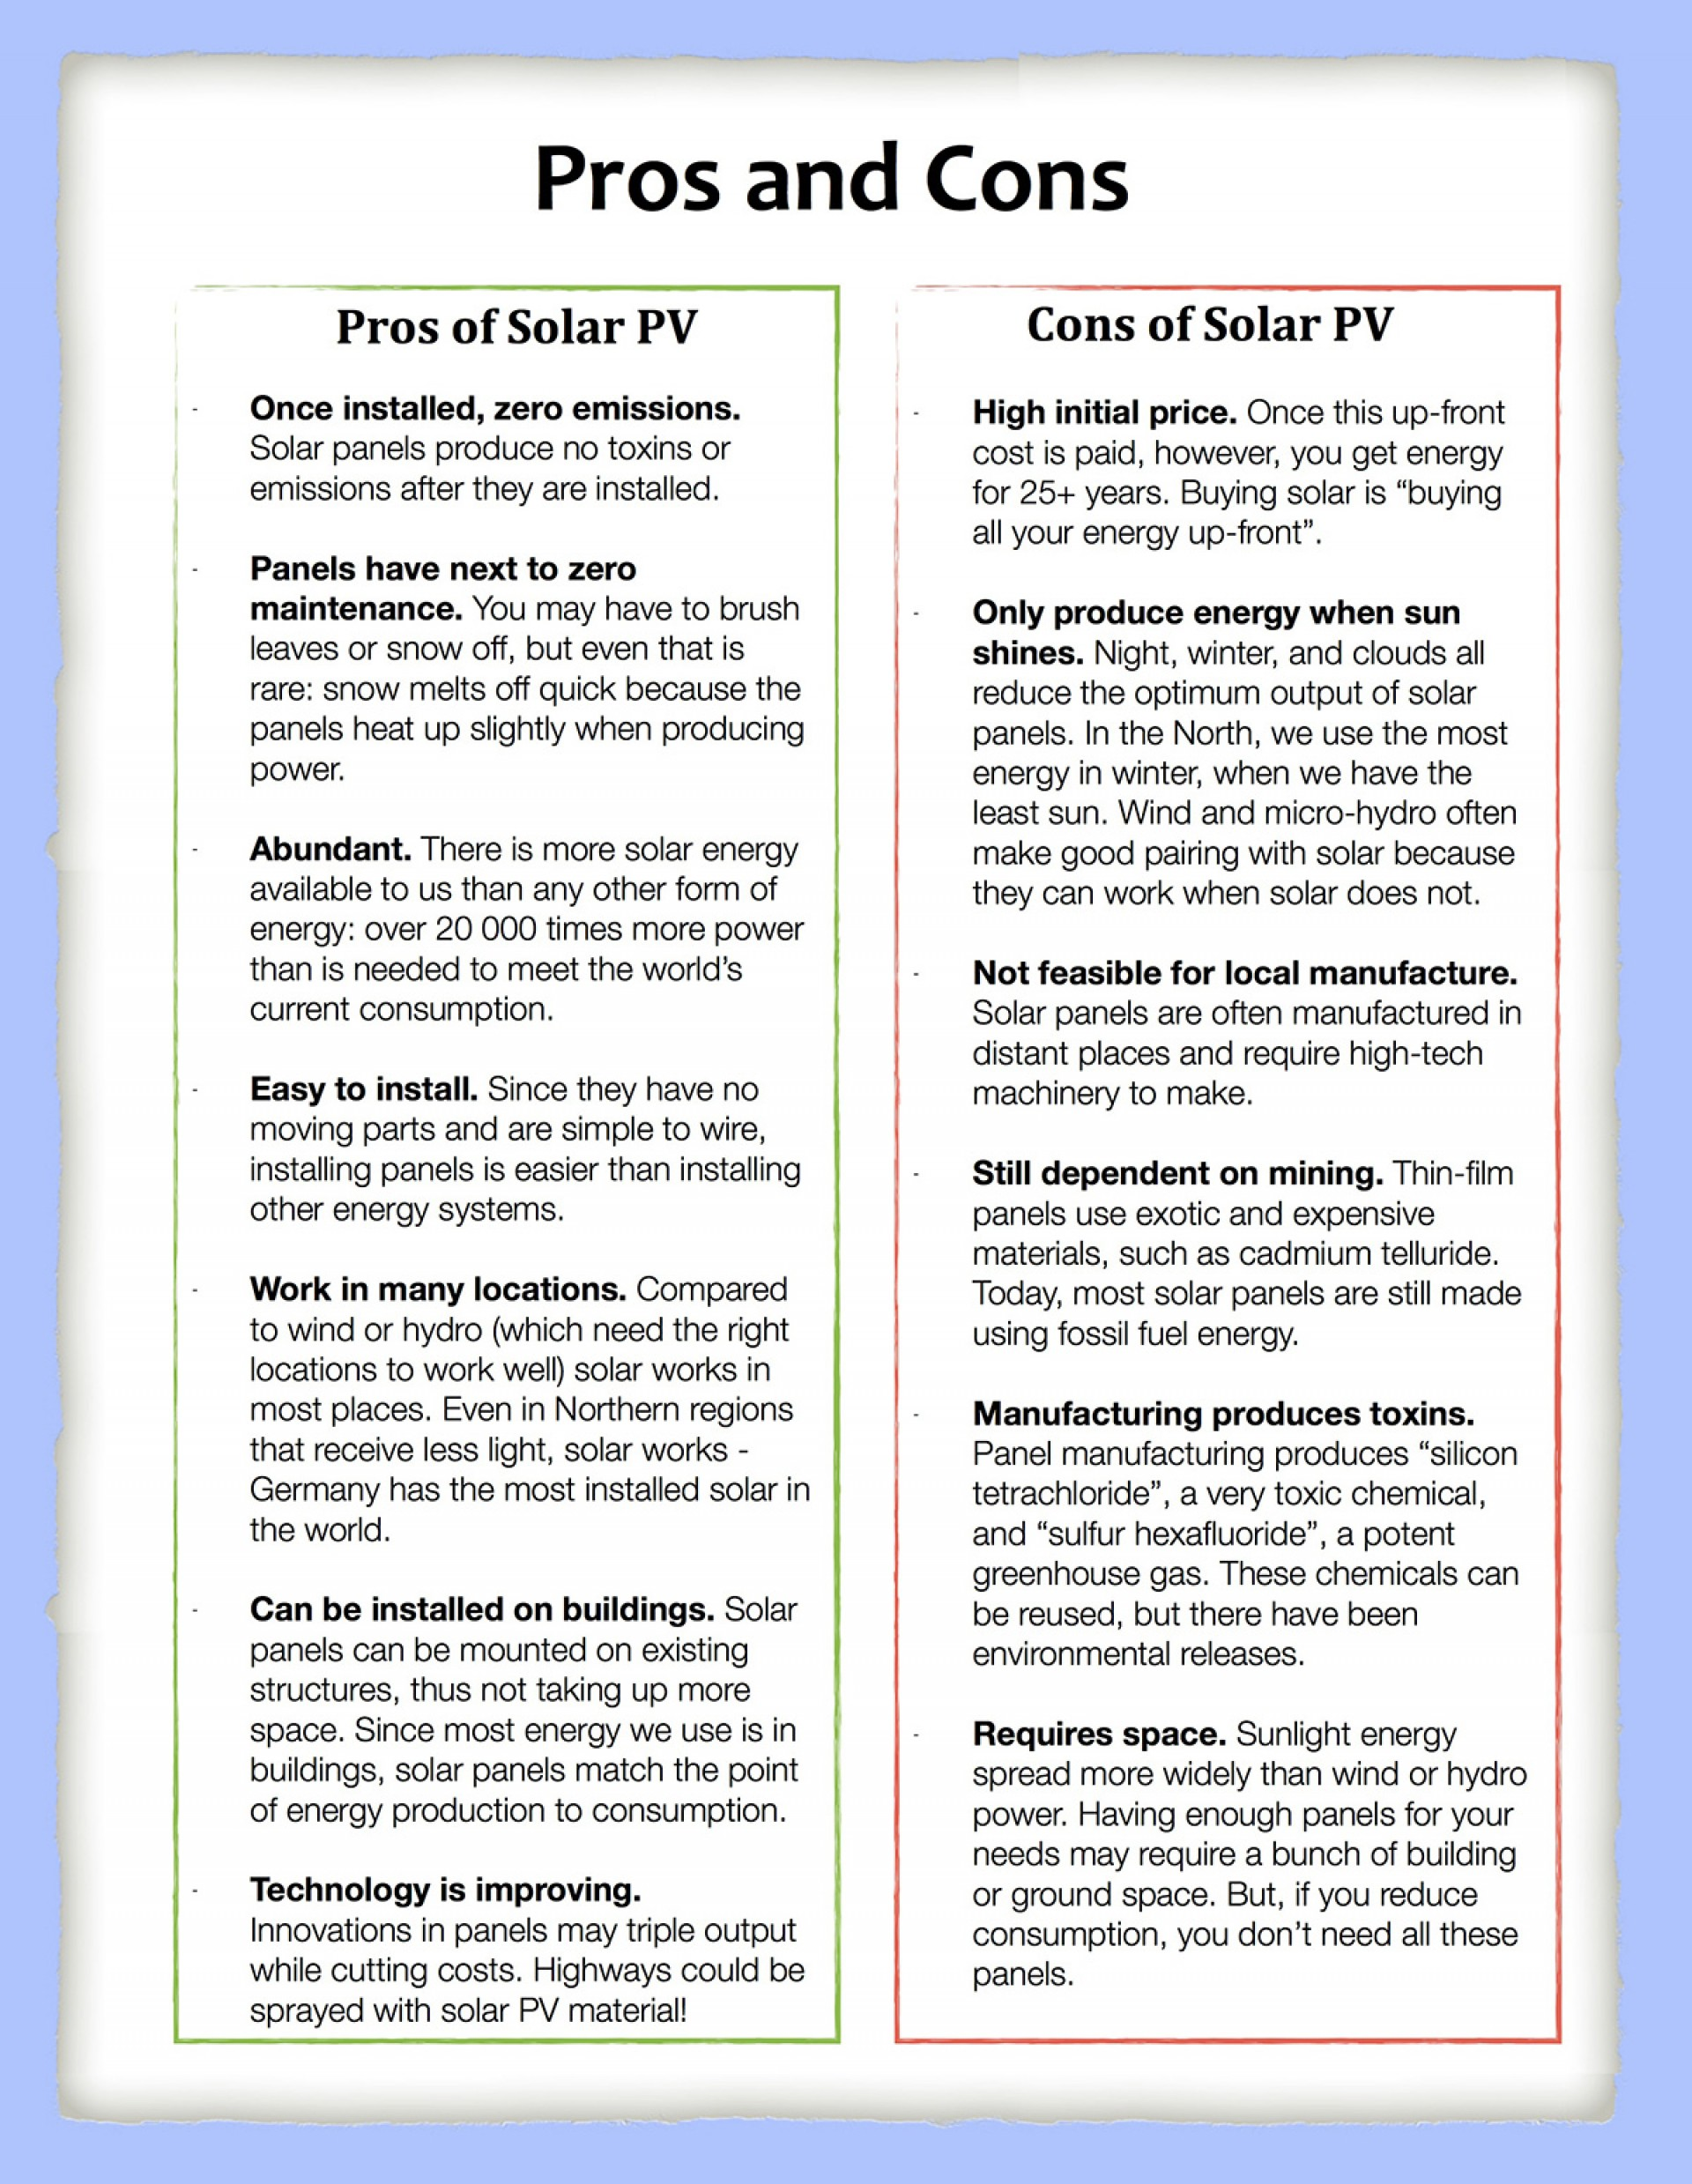 006 Solarposter6 Essay Example Writing Pros And Fascinating Cons Explain How To Write An About The Of A Job 1920